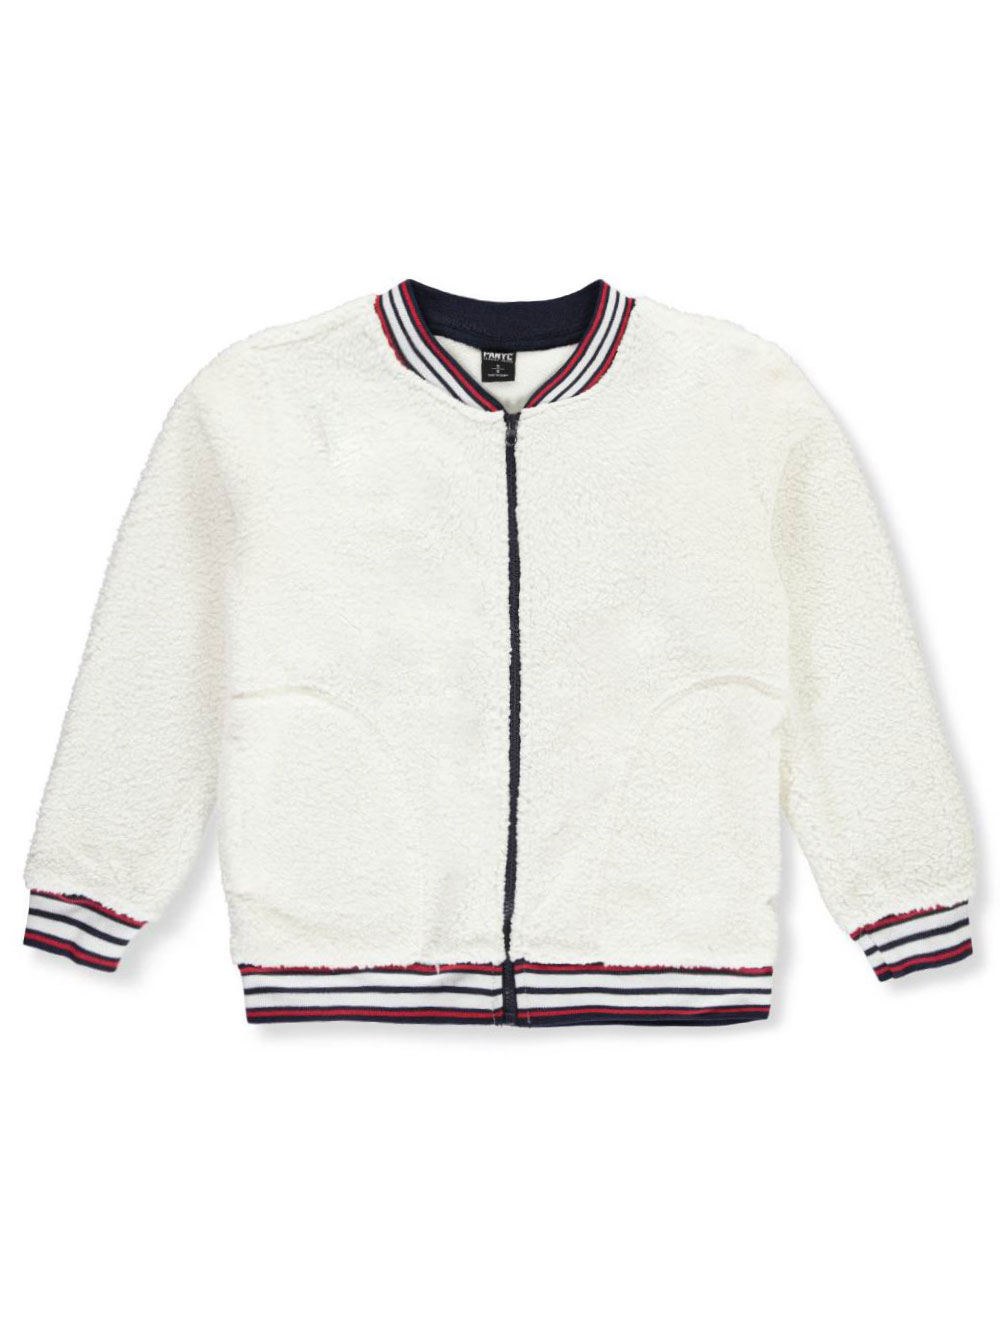 d033fa704 Boys' Sherpa Flight Jacket by Panyc in black, maroon, navy and white